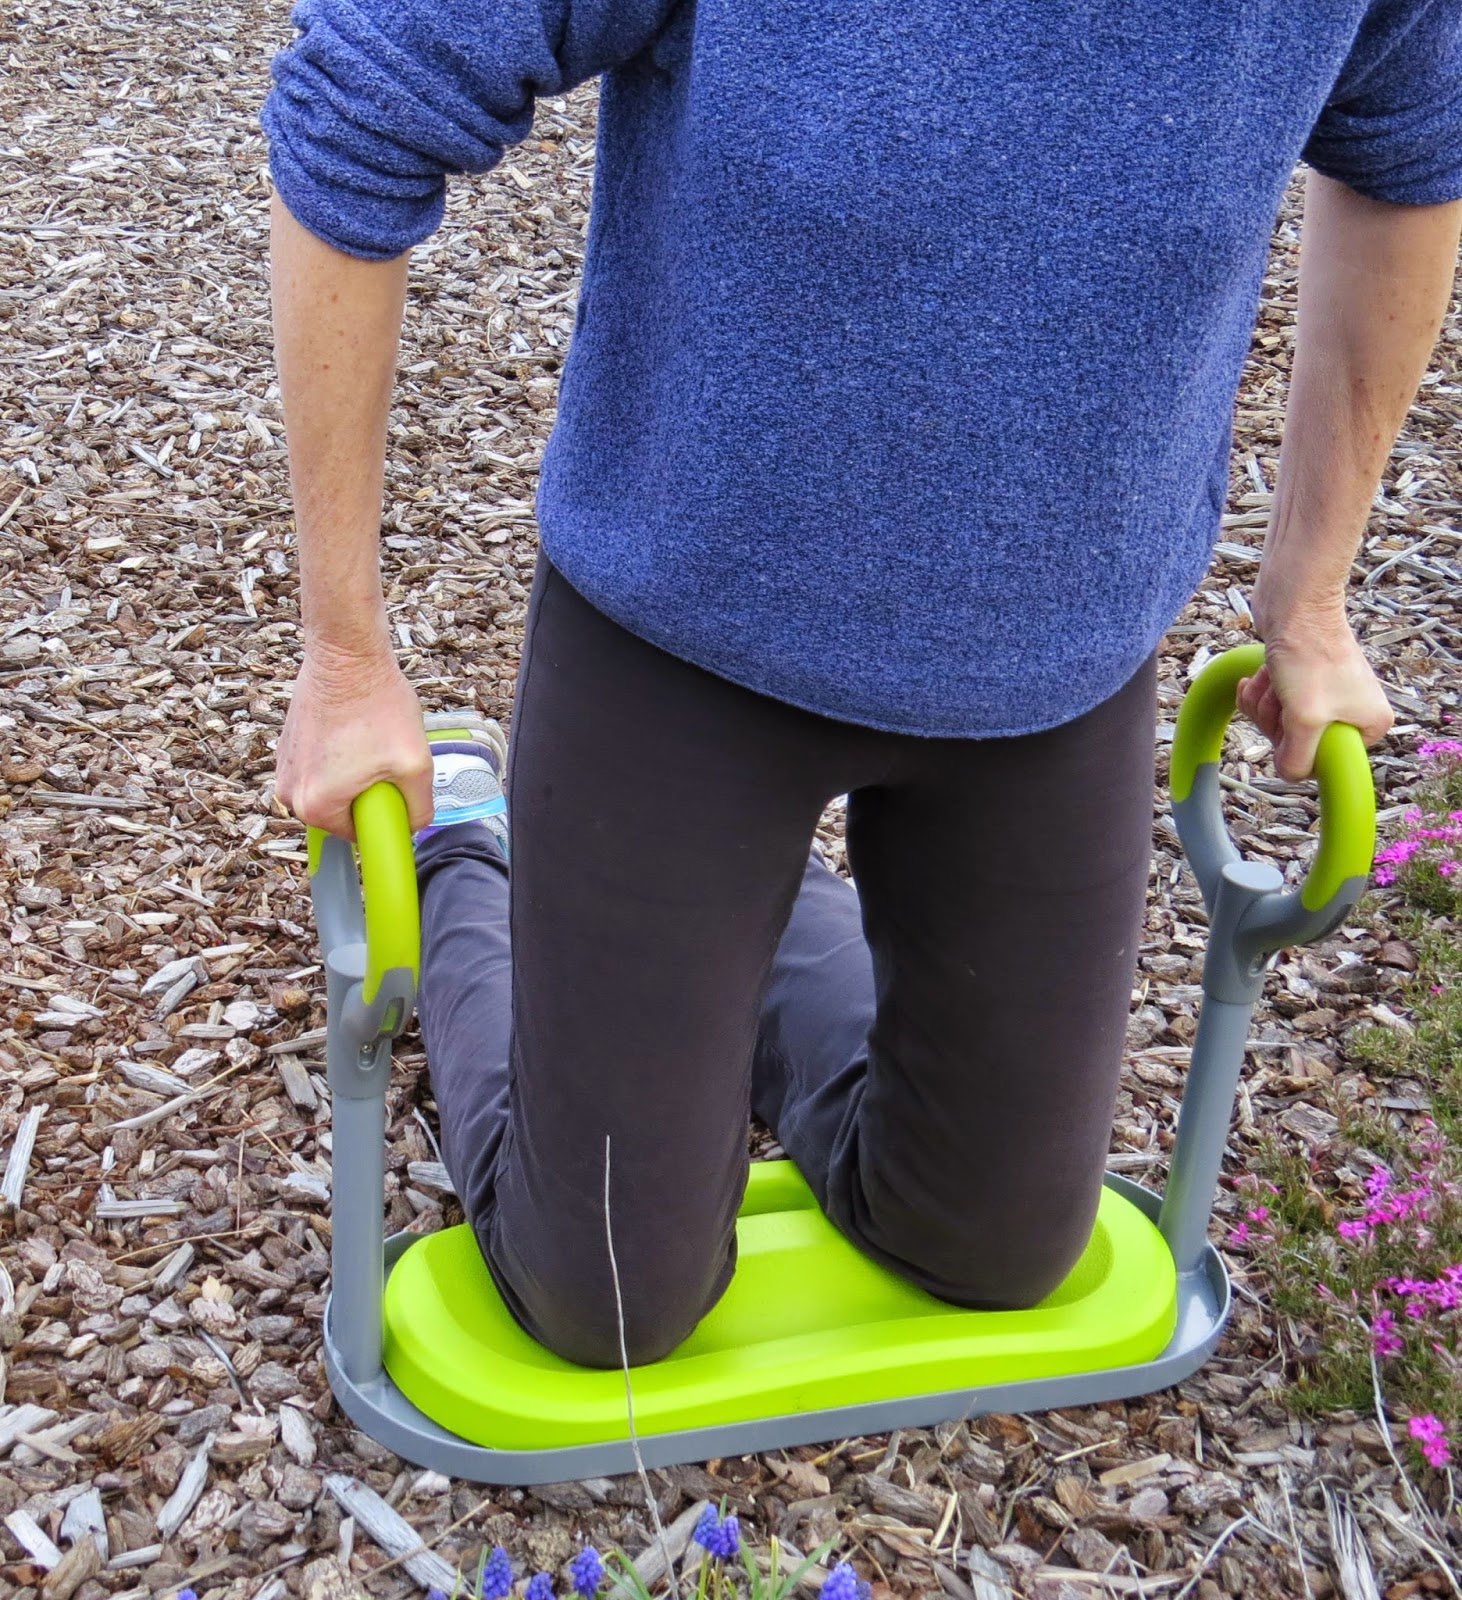 Review GardenEase Garden Kneeler Susans in the Garden